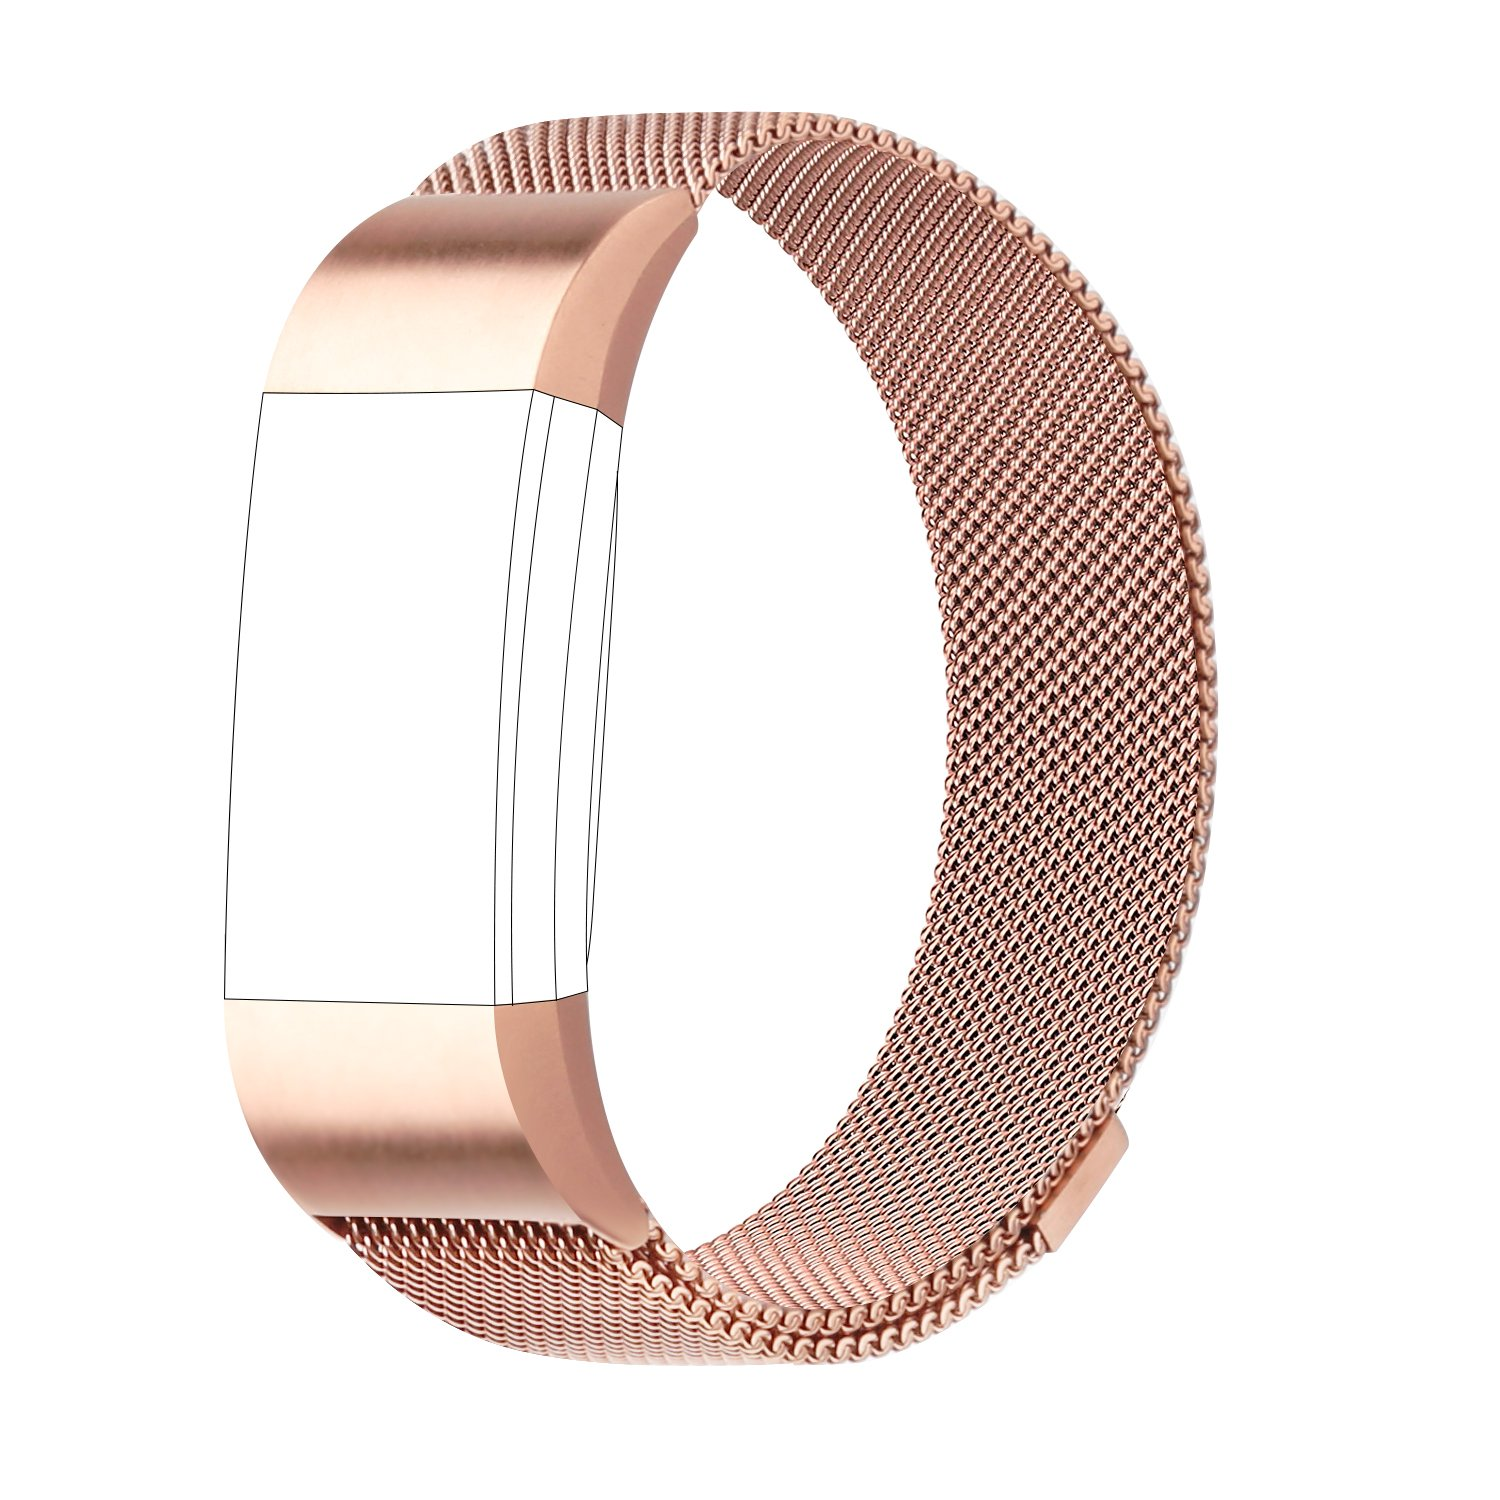 POY For Fitbit Charge 2 Bands, Milanese Loop Stainless Steel Bracelet Smart Watch Strap with Unique Magnet Lock for Fitbit Charge 2 Replacement Wristbands Large Small